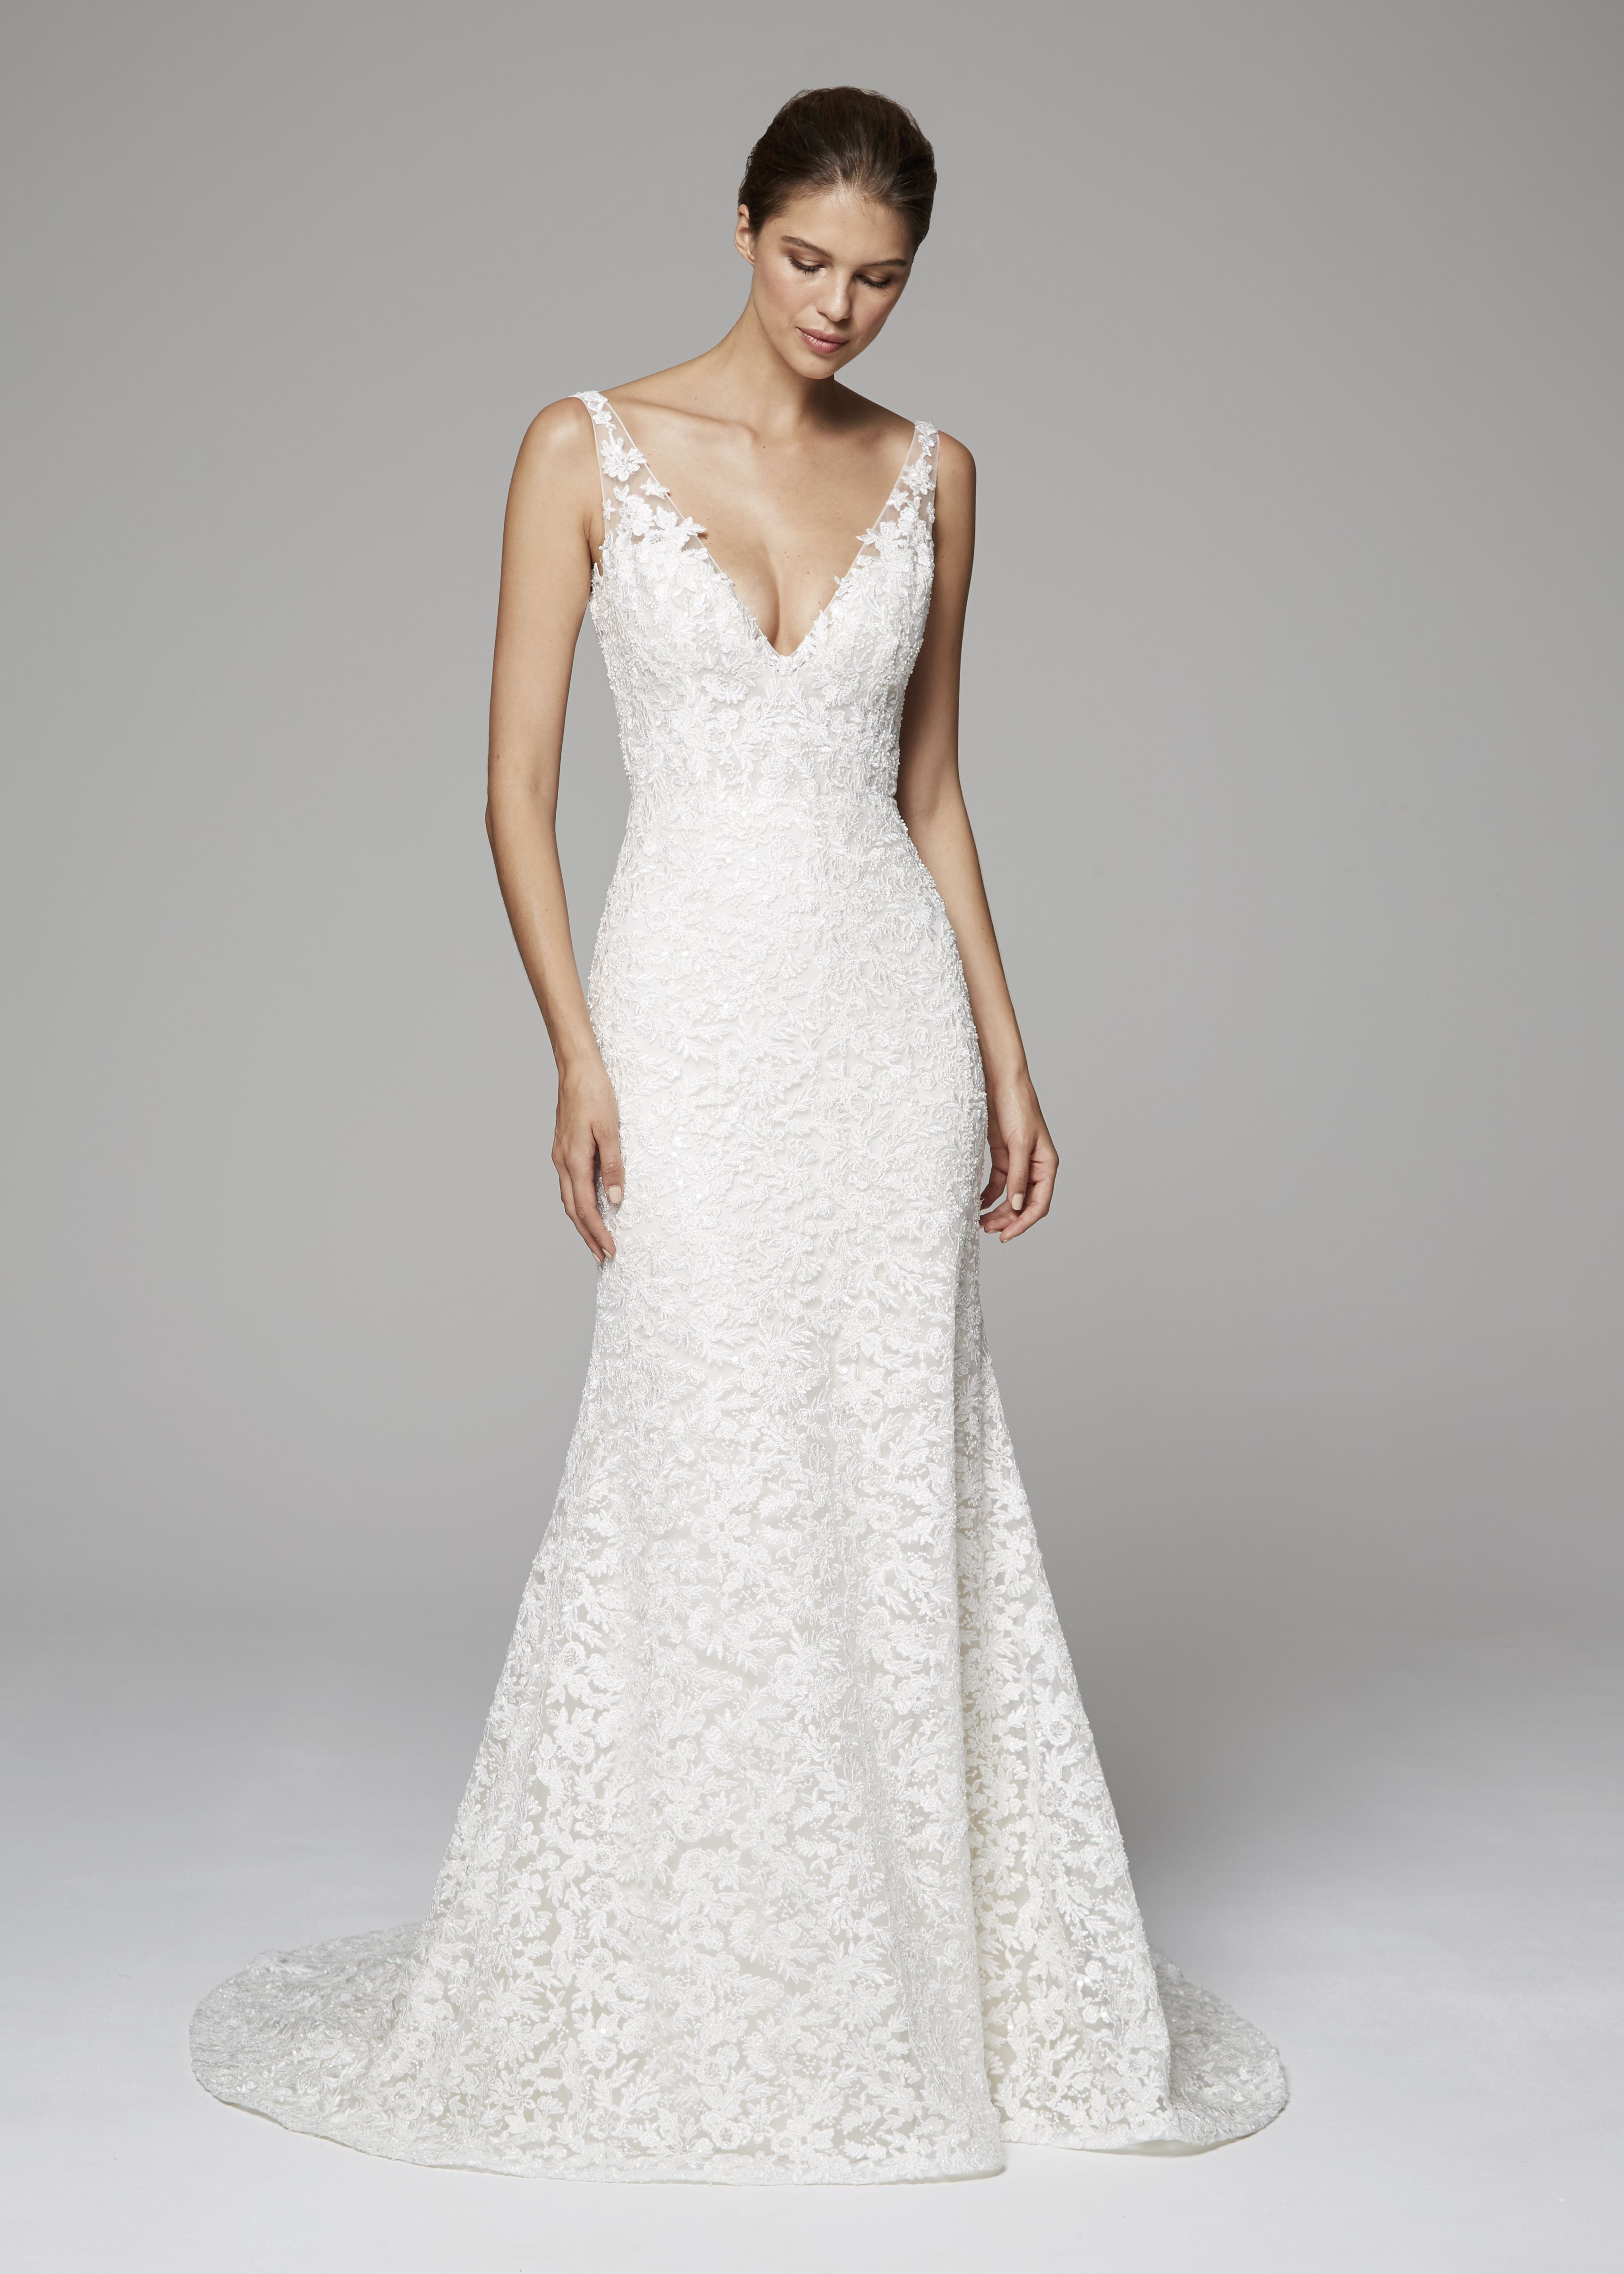 Pin By Angie05 On Wedding Dresses Bridal Anne Barge Wedding Dresses